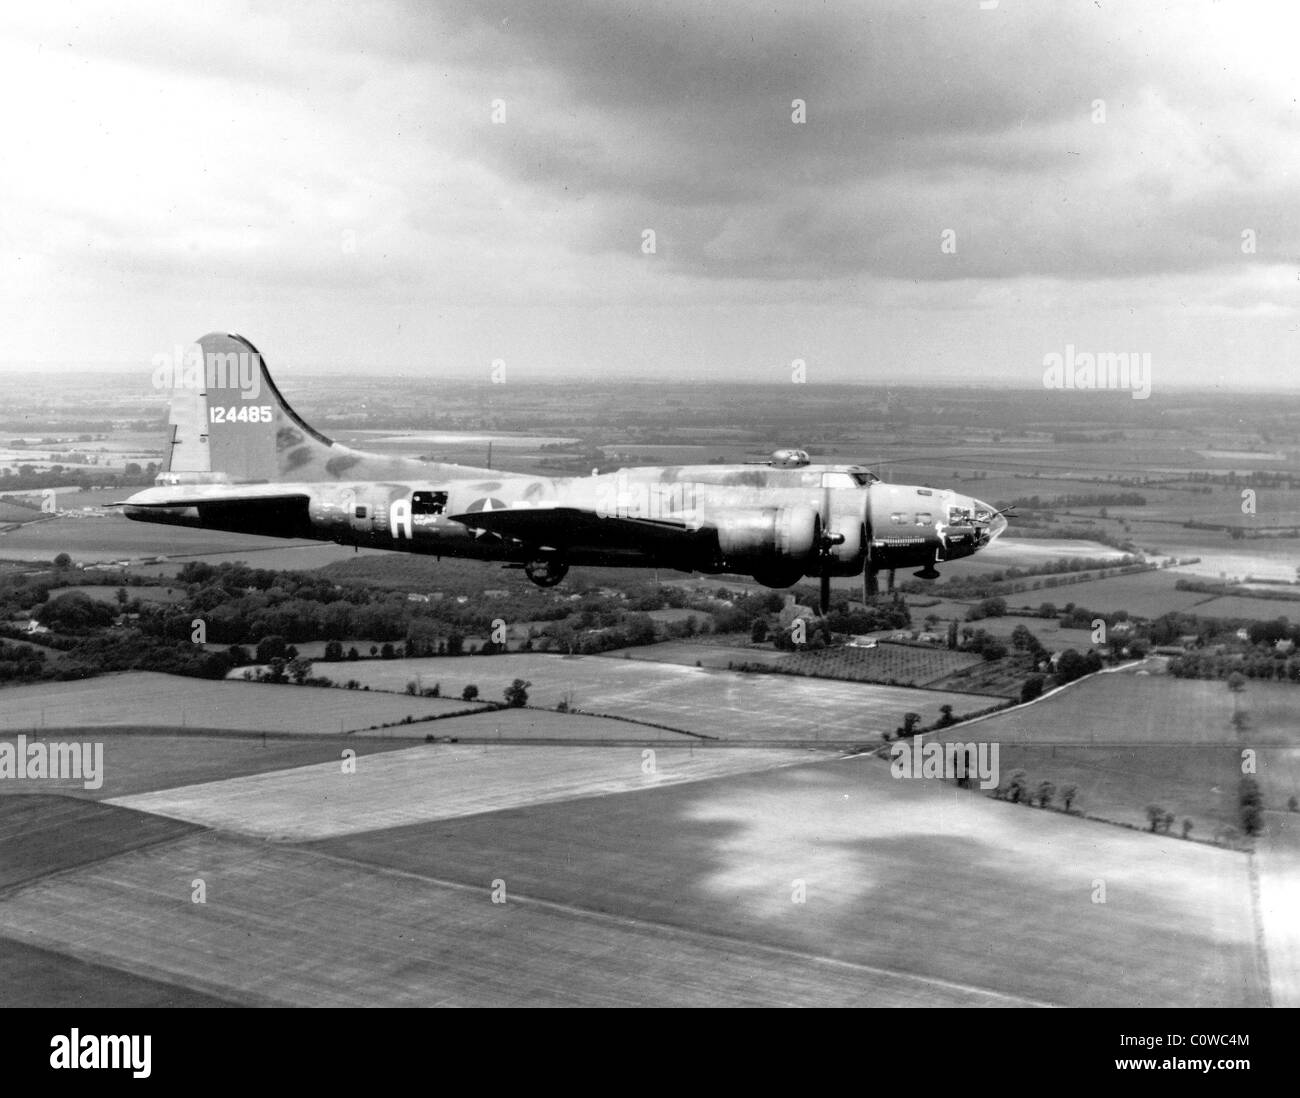 Memphis Belle, The Boeing B-17 'The Memphis Belle' is pictured on her way back to the United States from - Stock Image